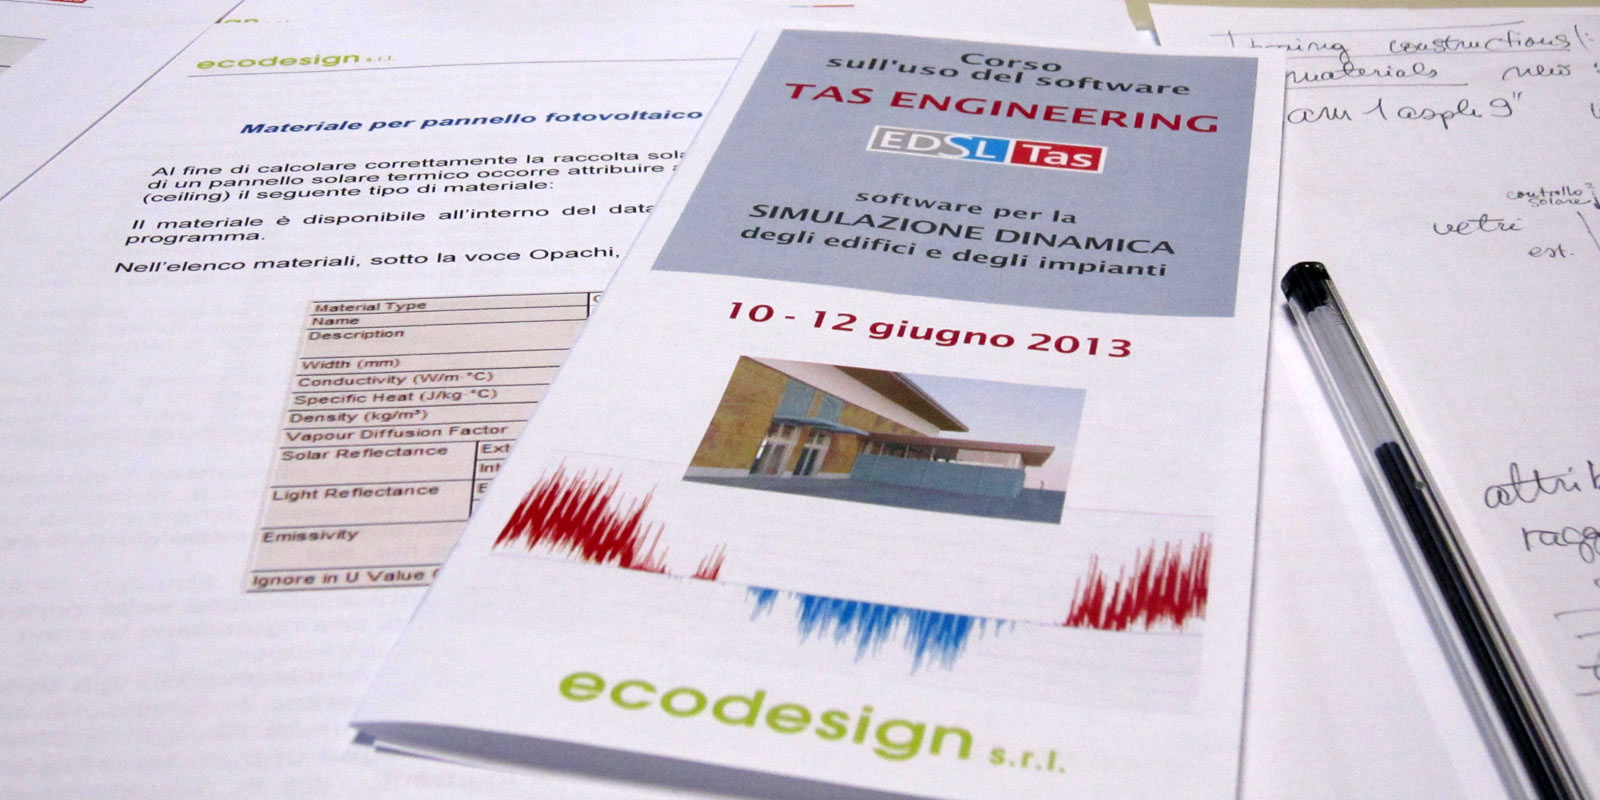 tas-engineering-corso.jpg